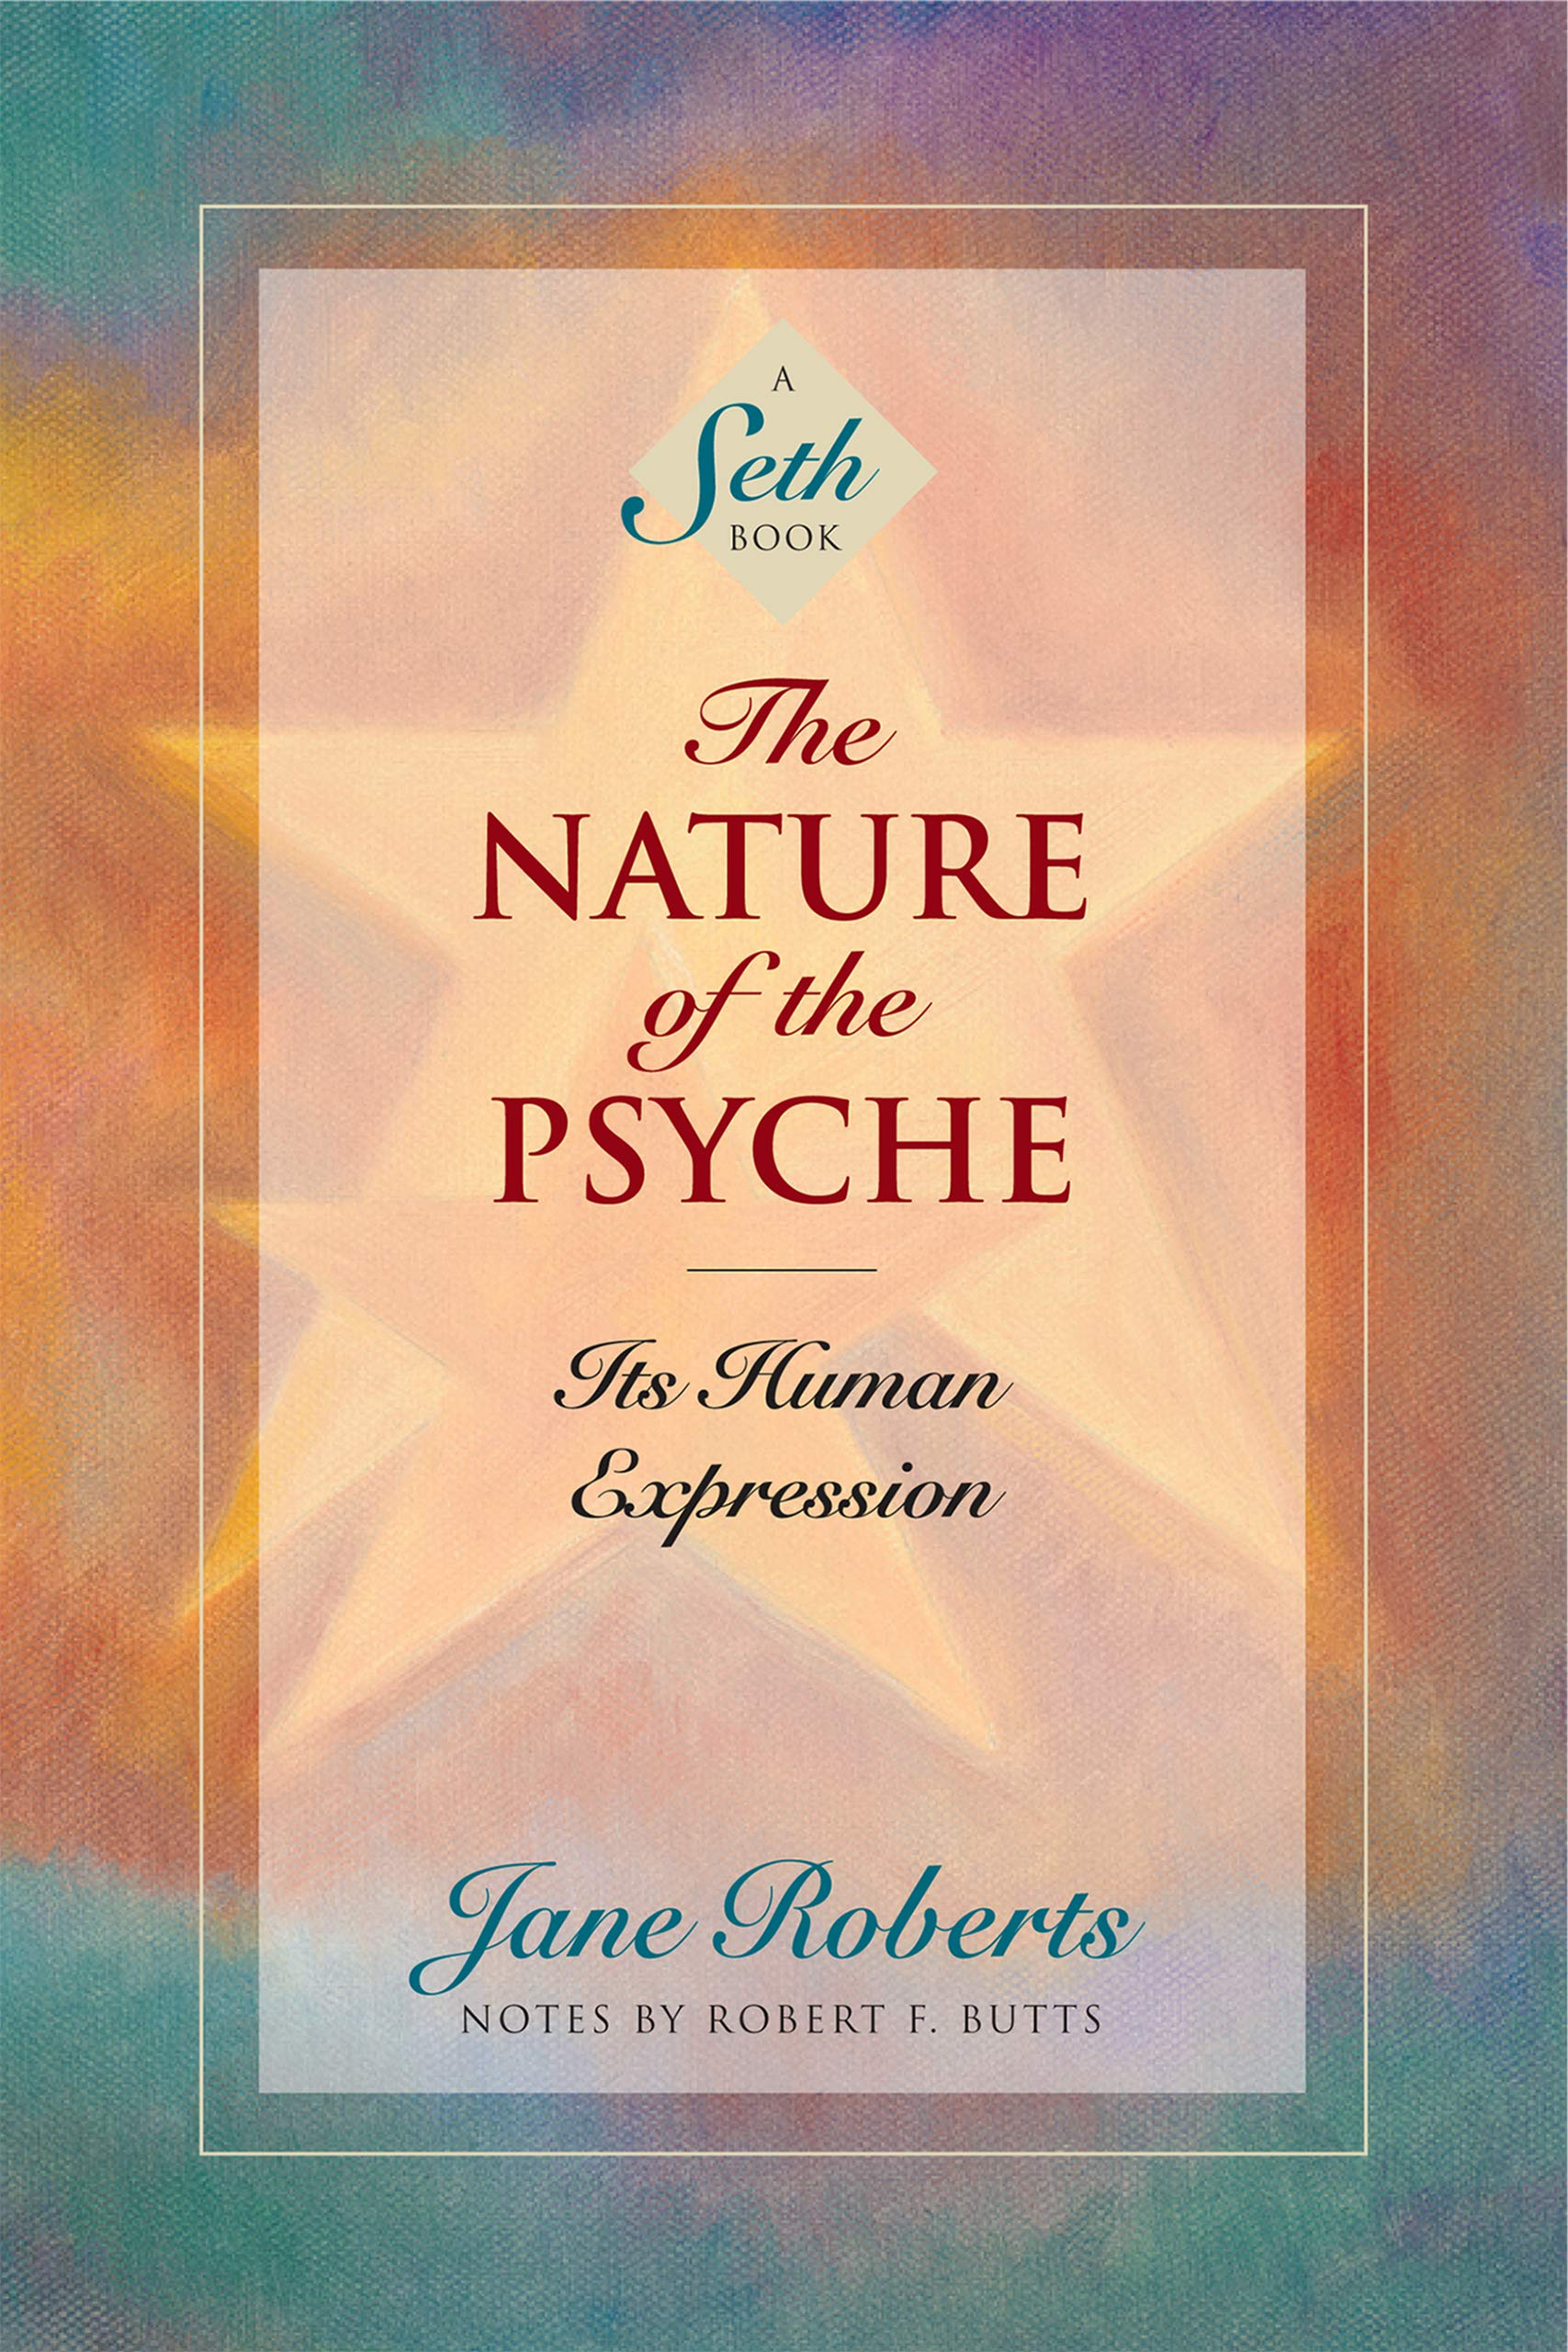 Download The Nature Of The Psyche: Its Human Expression (A Seth Book) 